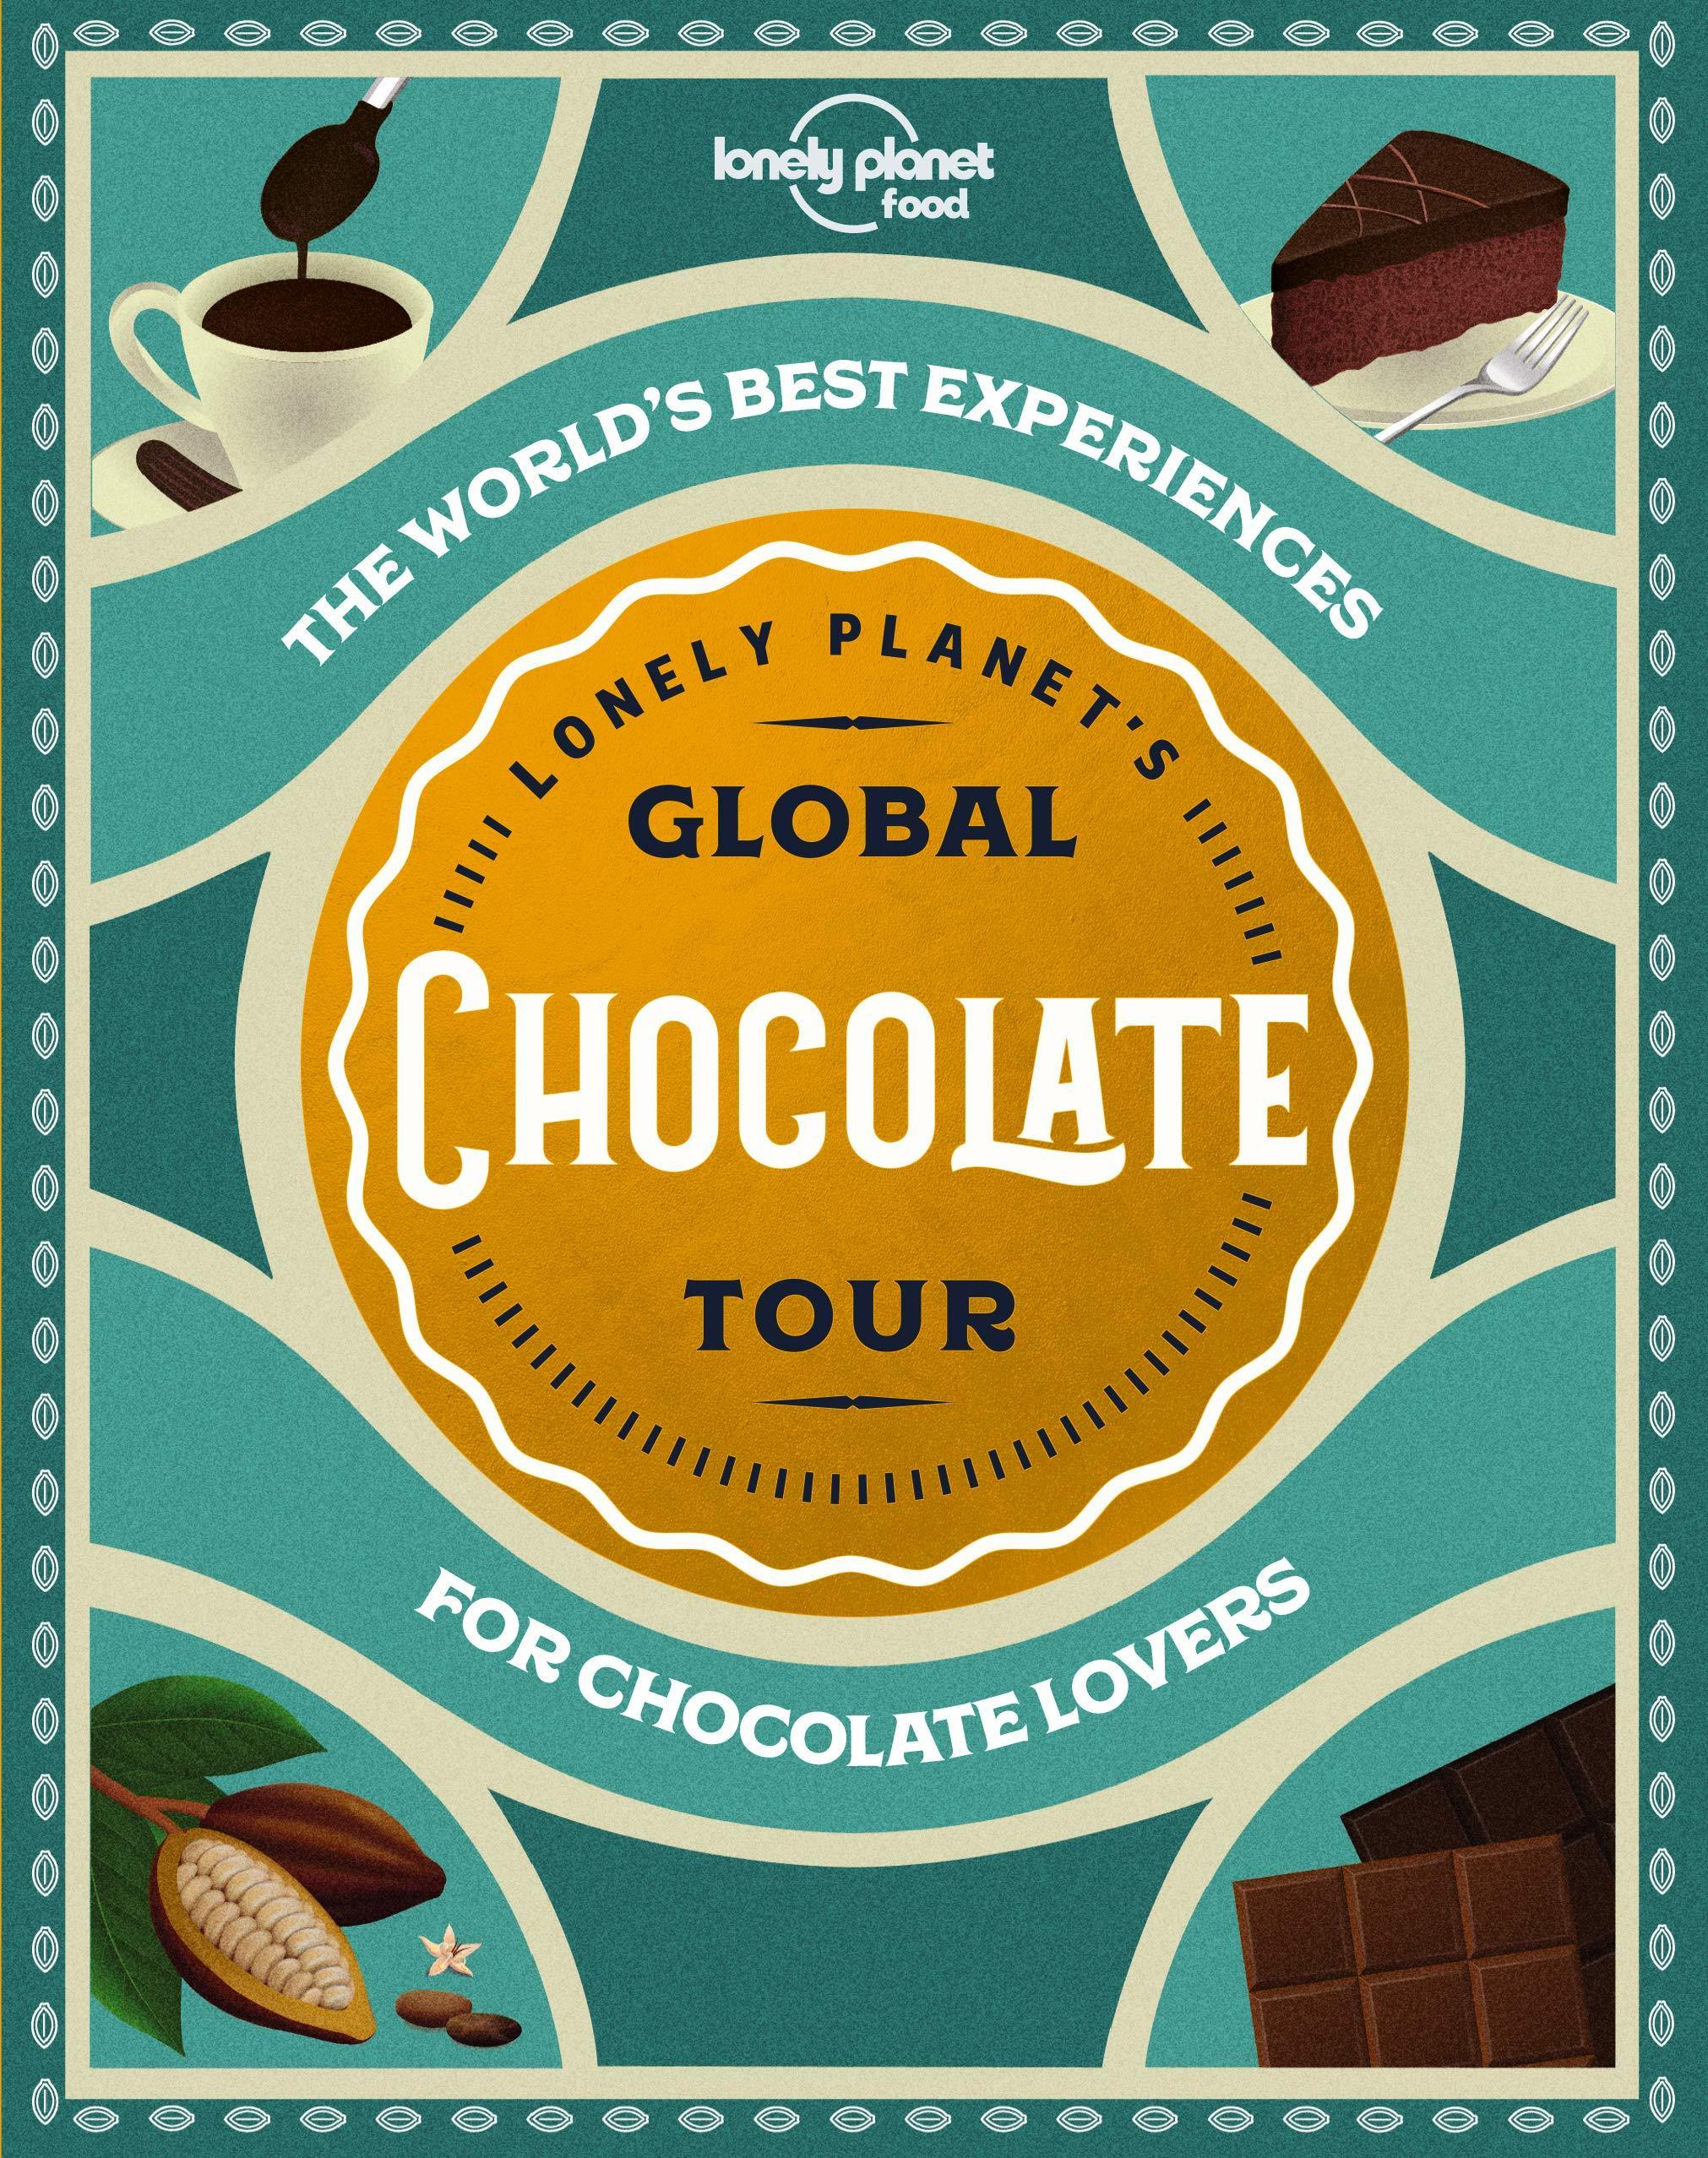 Lonely Planet's Global Chocolate Tour